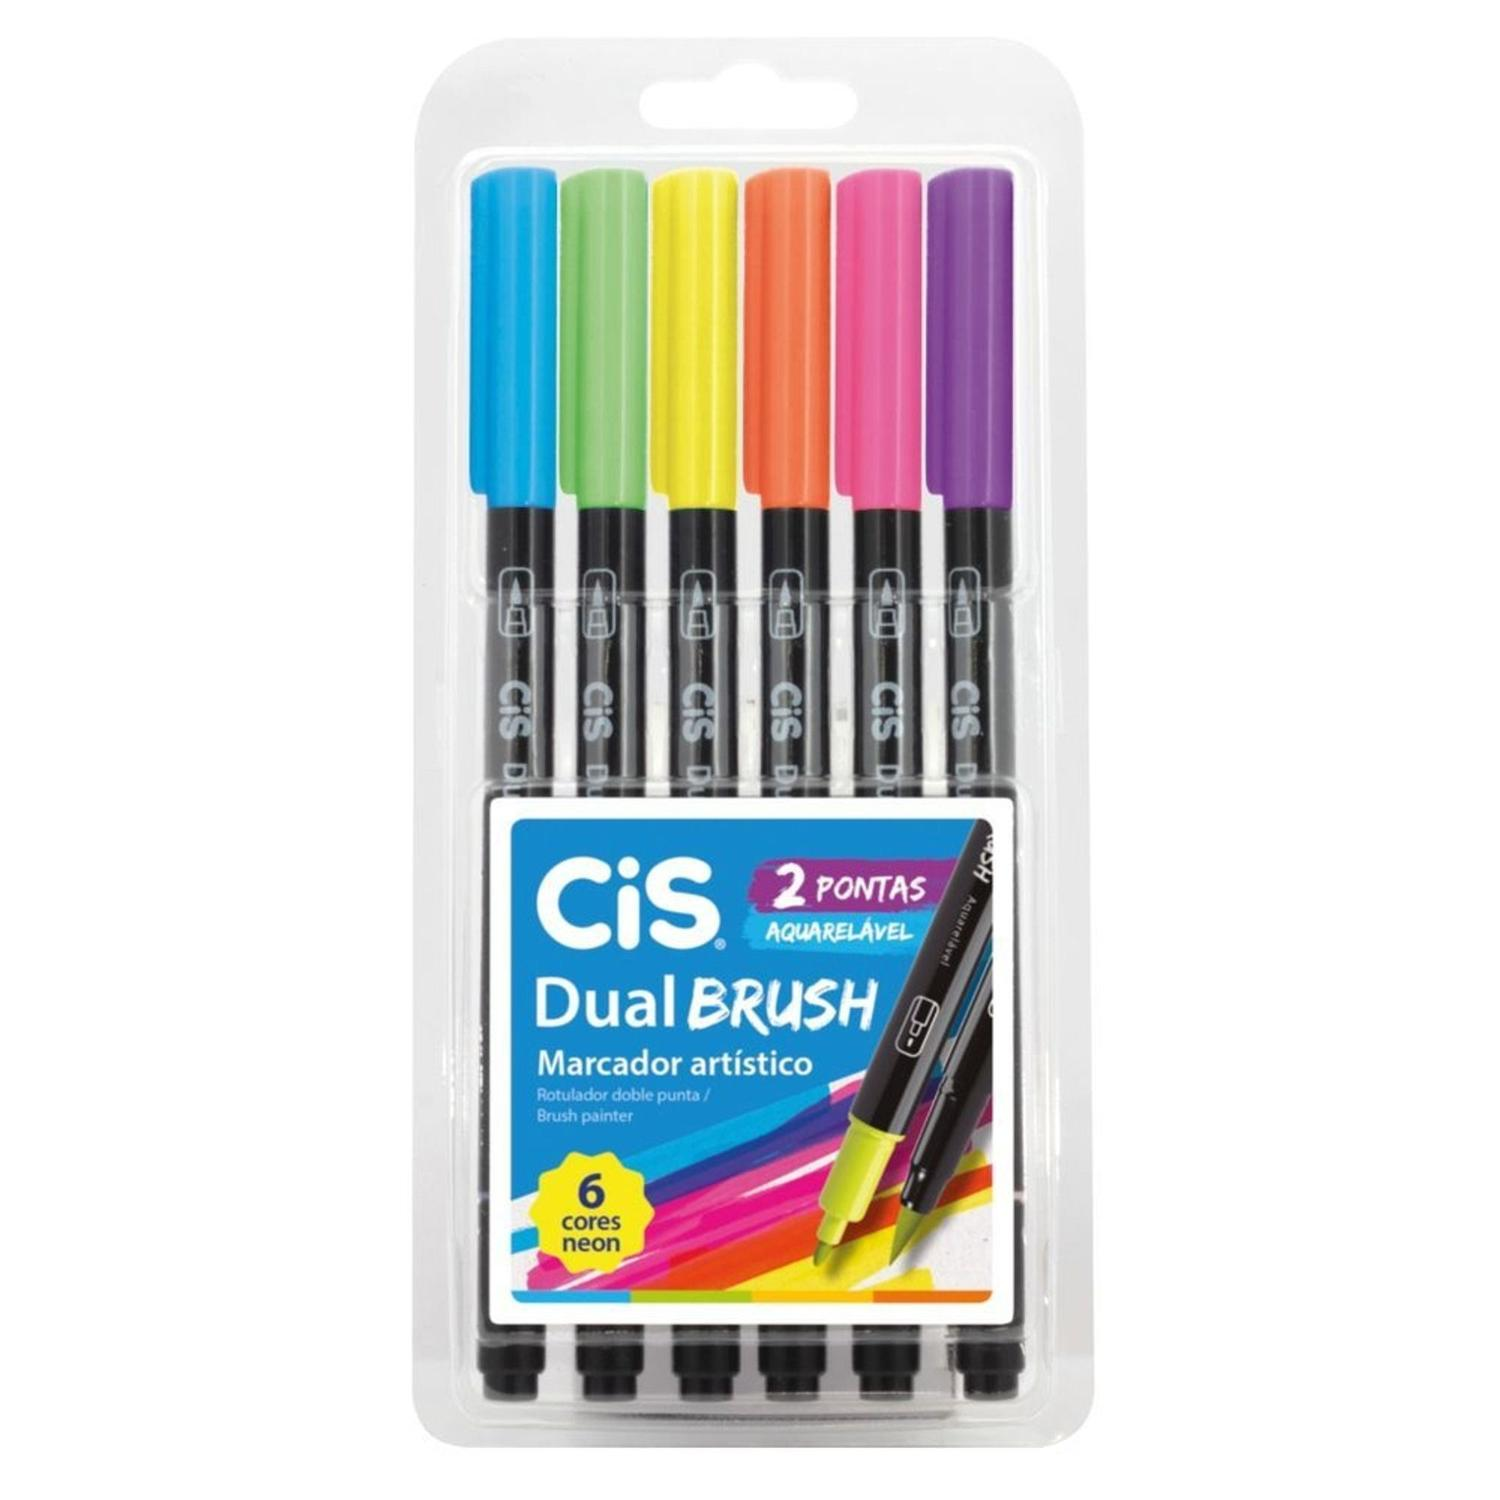 Brush Pen Cis Dual Brush - 6 Cores Neon